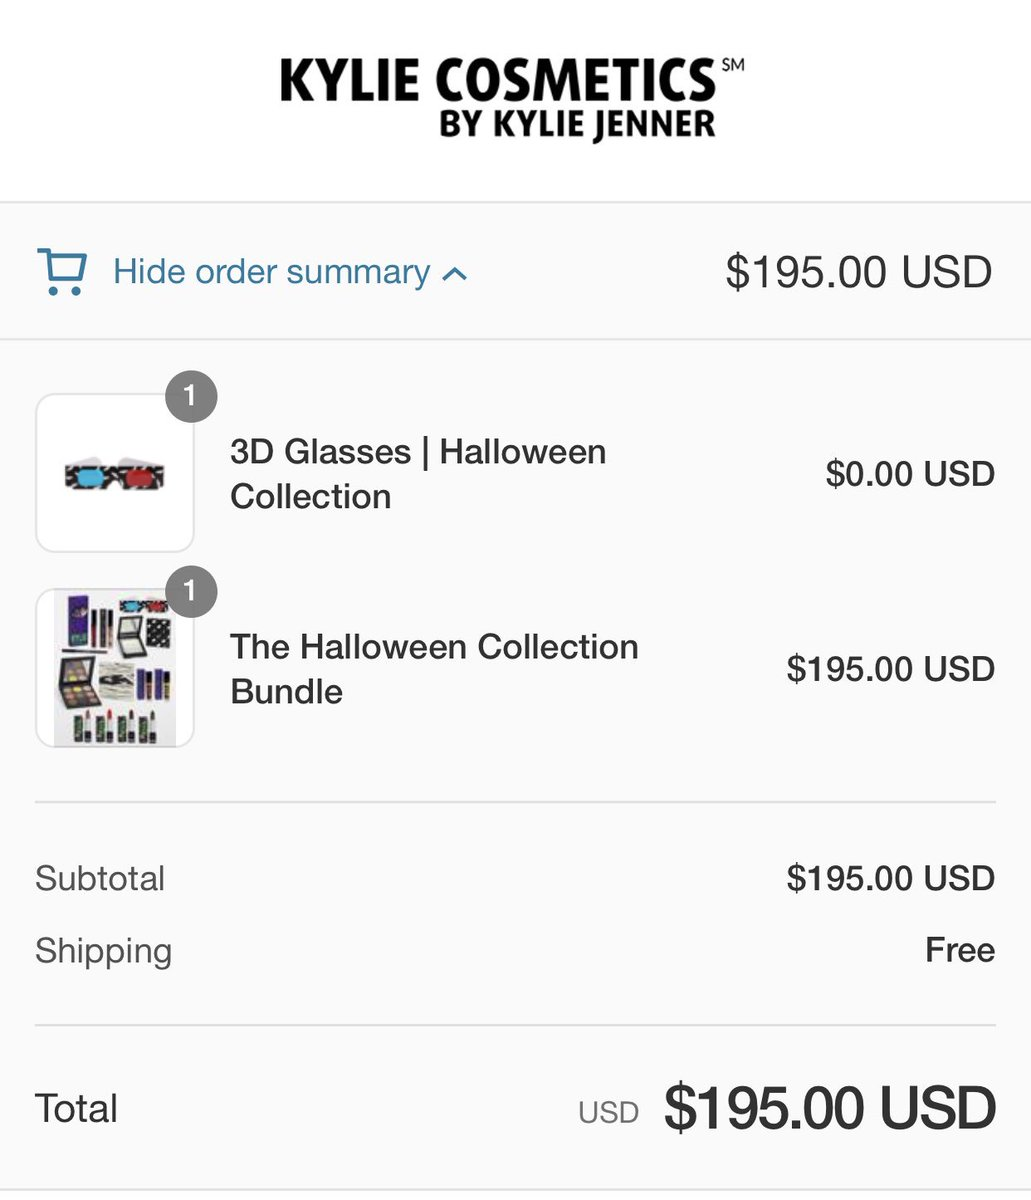 RT @heyyitsslivv: never been so excited to receive makeup???? @KylieJenner @kyliecosmetics https://t.co/1tdFKqrxMY